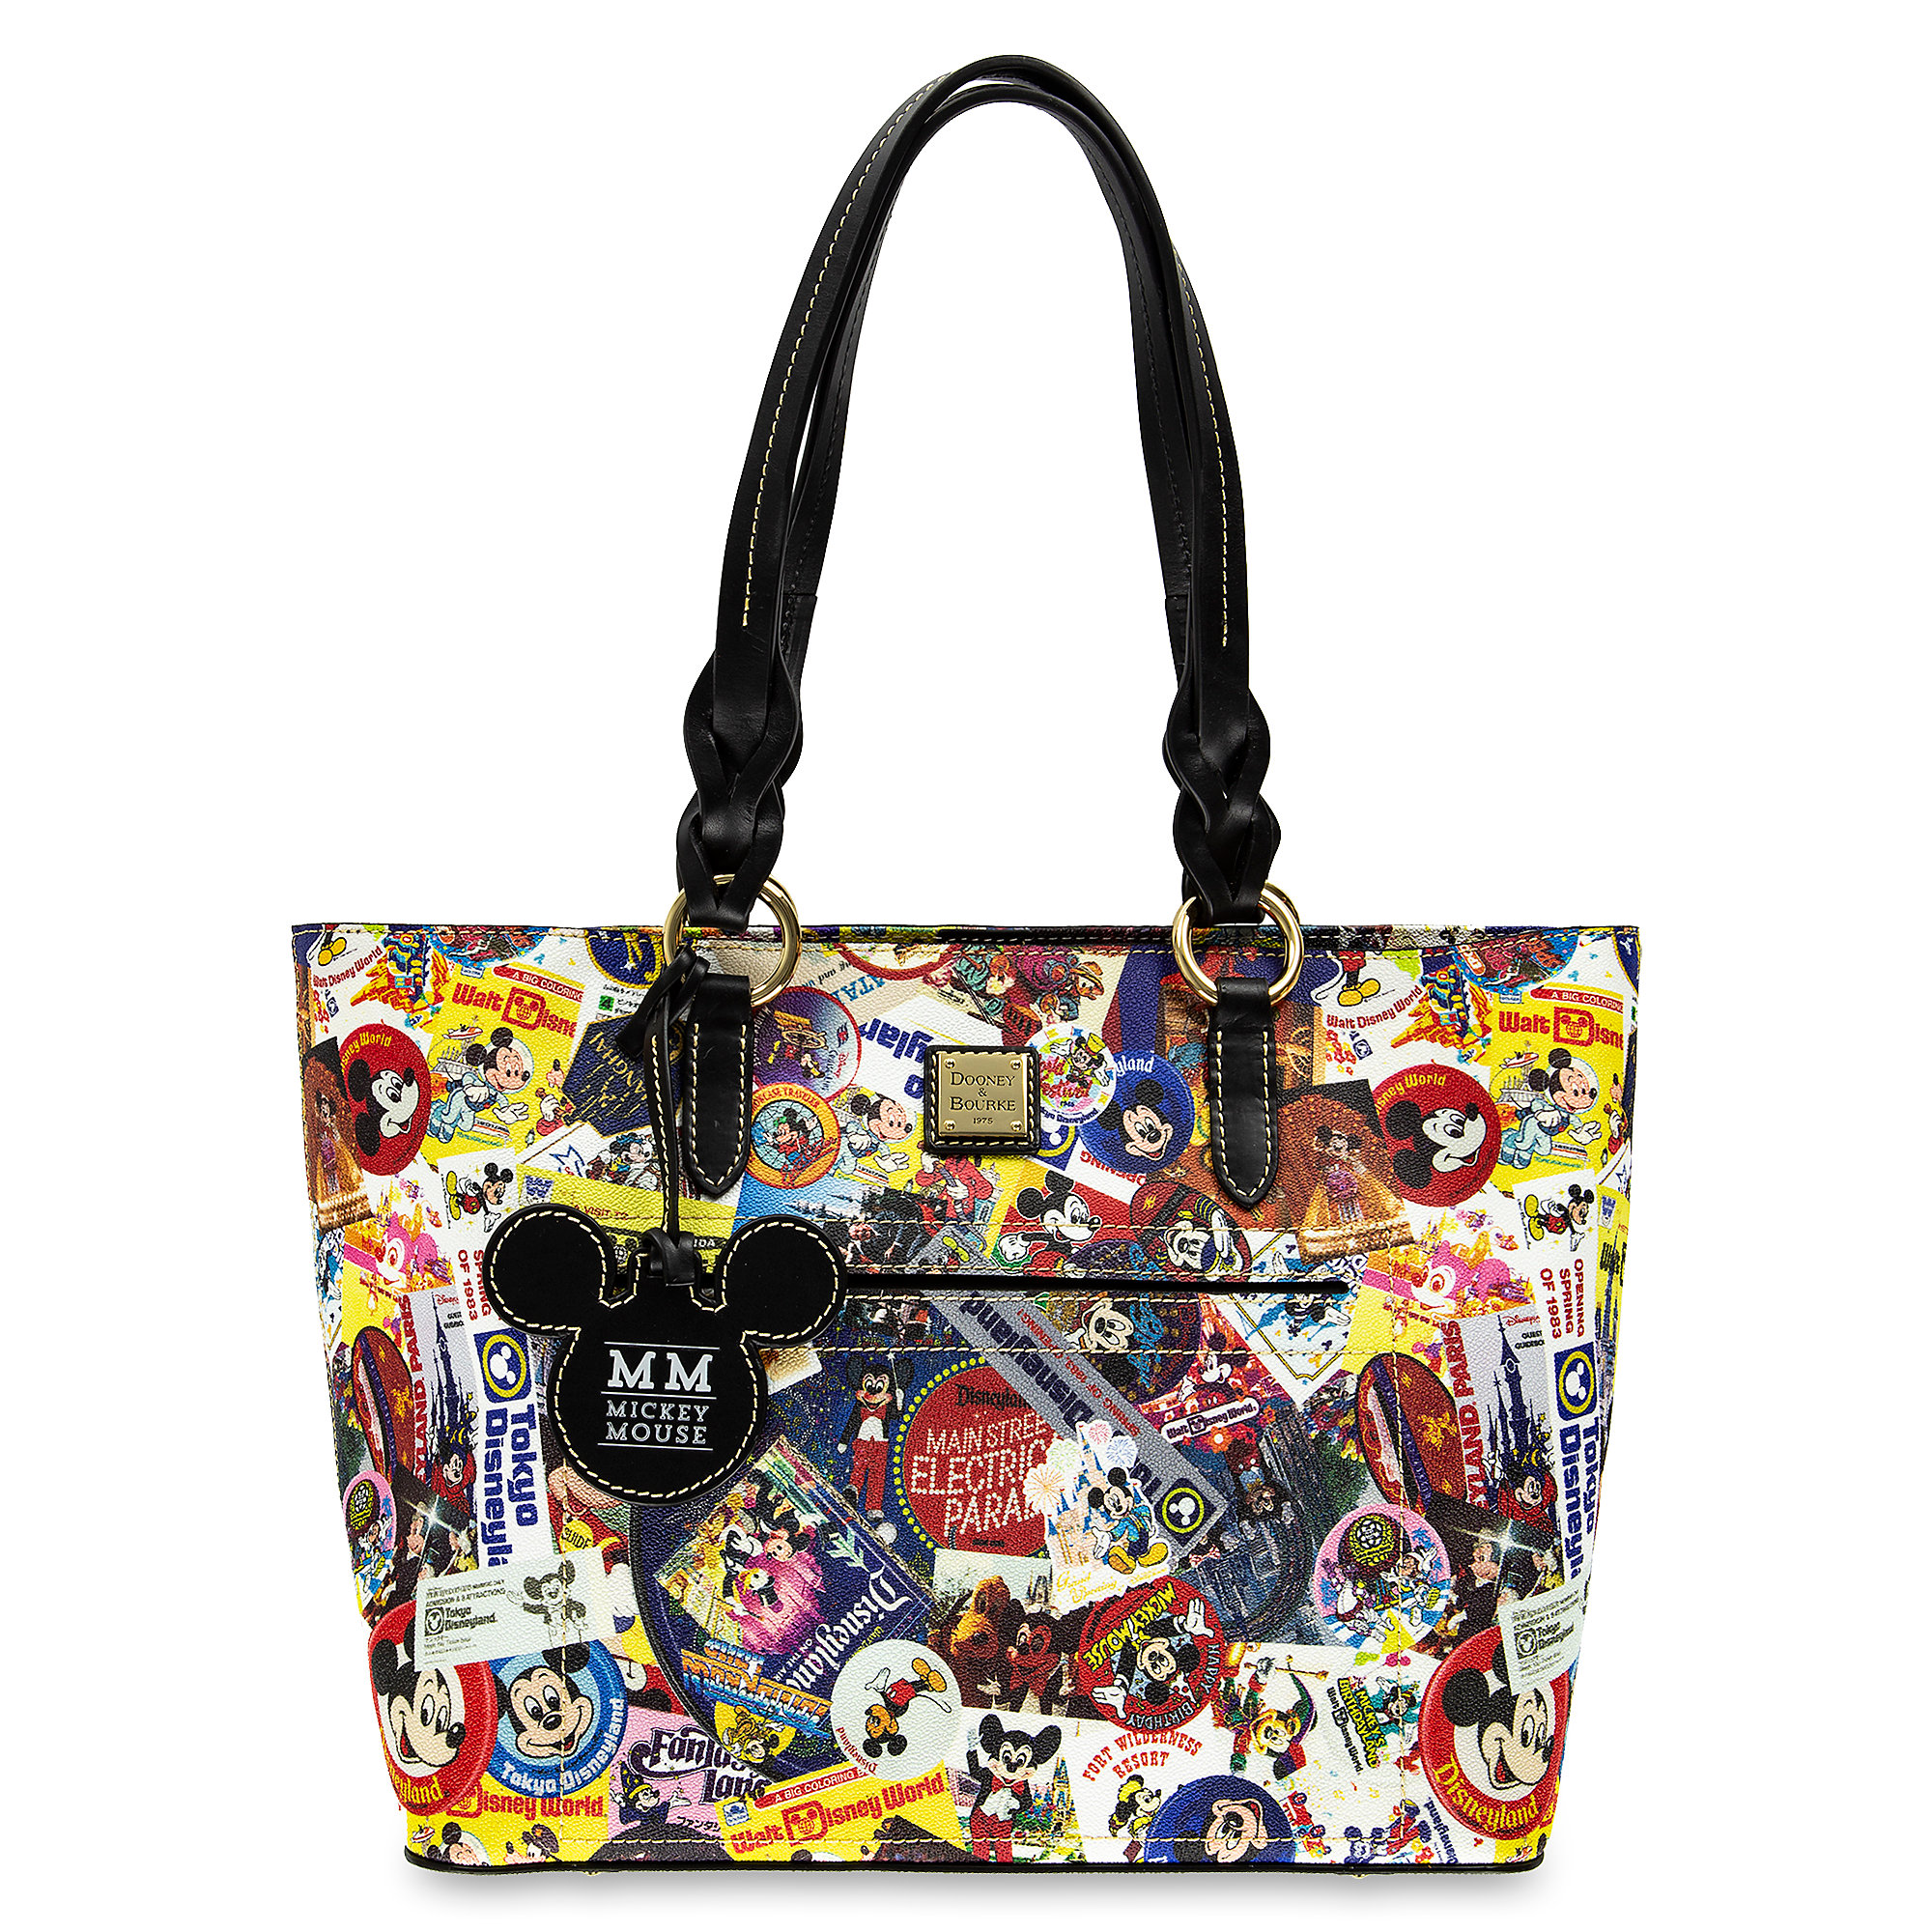 Mickey Mouse Tote Bag by Dooney & Bourke Official shopDisney